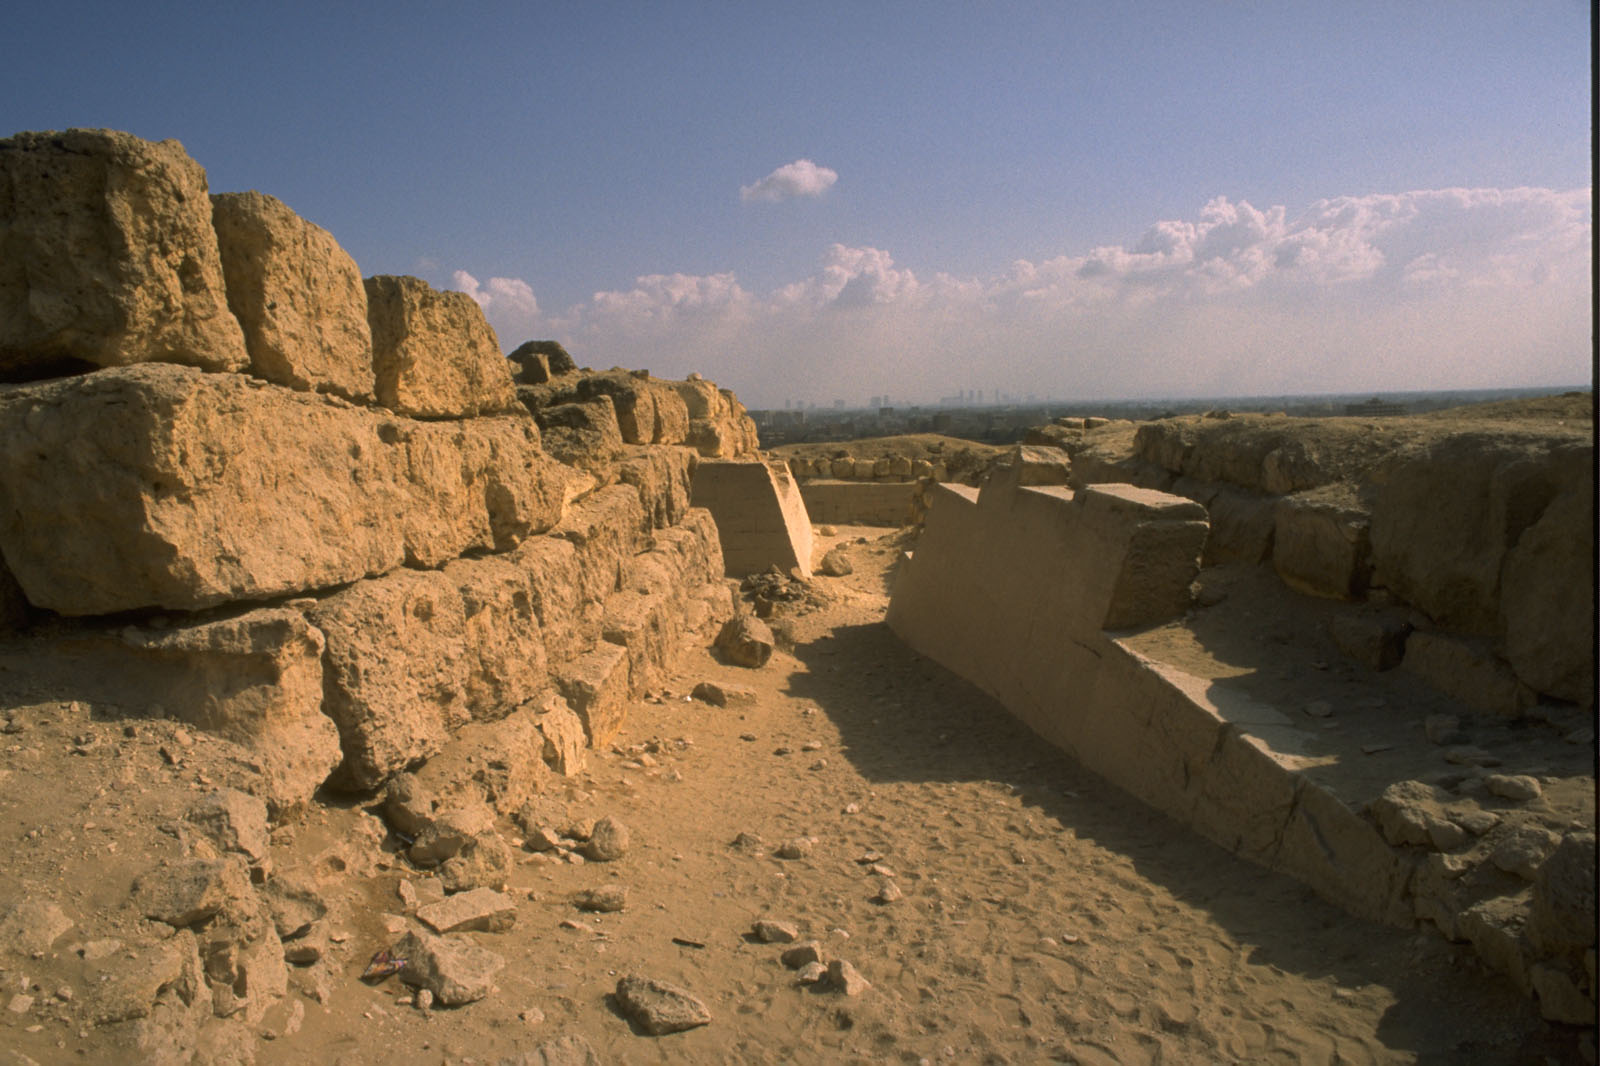 Eastern Cemetery: Site: Giza; View: G 7530-7540, 7330-7340, 7440-7430, 7350, 7450